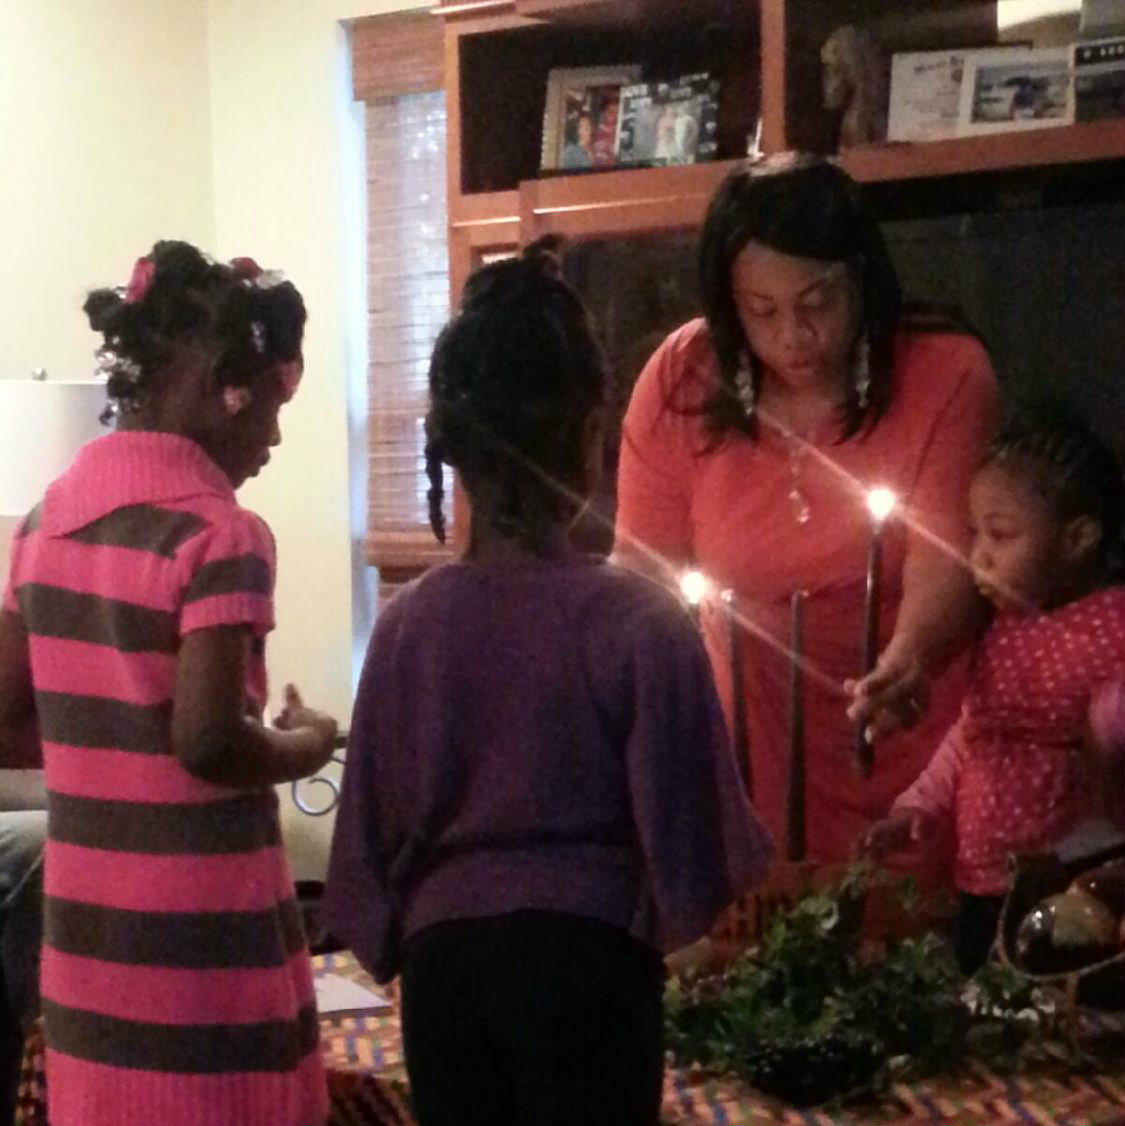 Regina Freeman and three younger members of her family light candles together in honor of the fourth day of Kwanzaa.